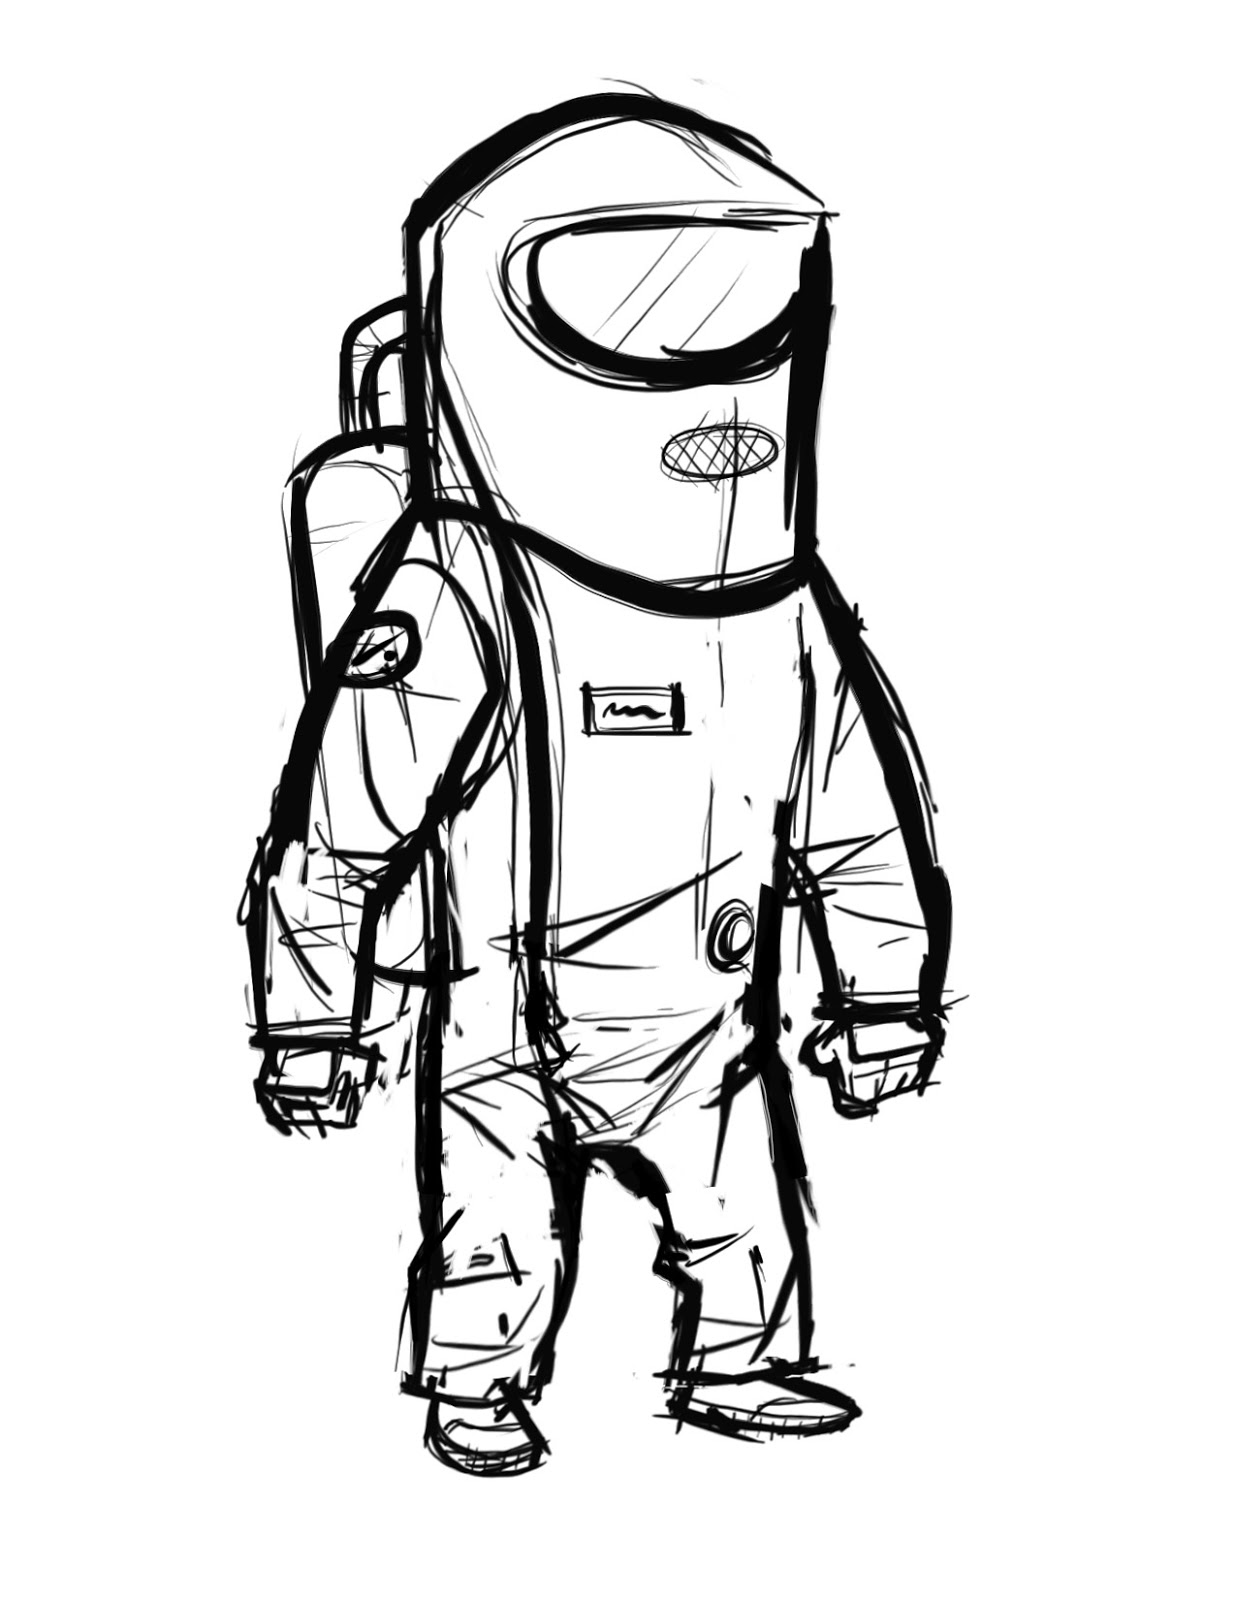 The Best Free Suit Drawing Images Download From 50 Free Drawings Of Suit At Getdrawings